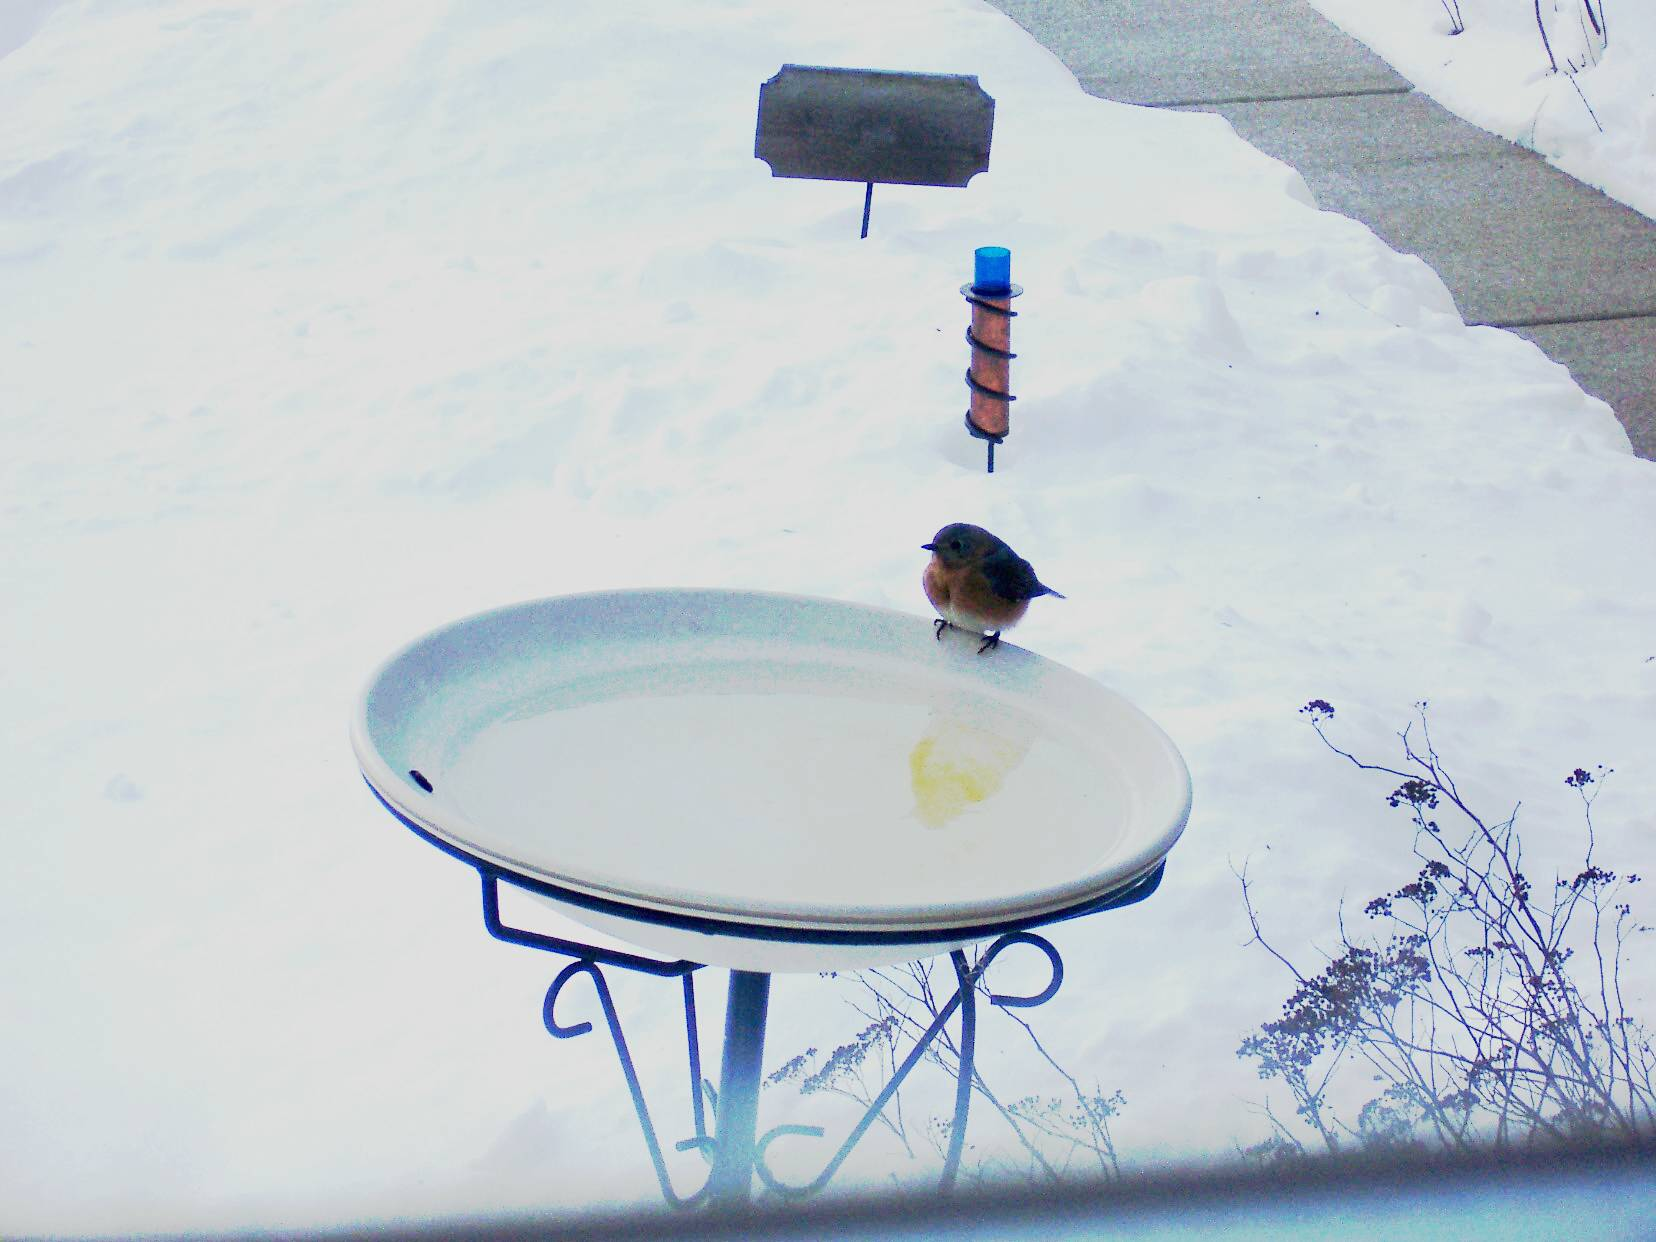 Bluebird in a heated bath